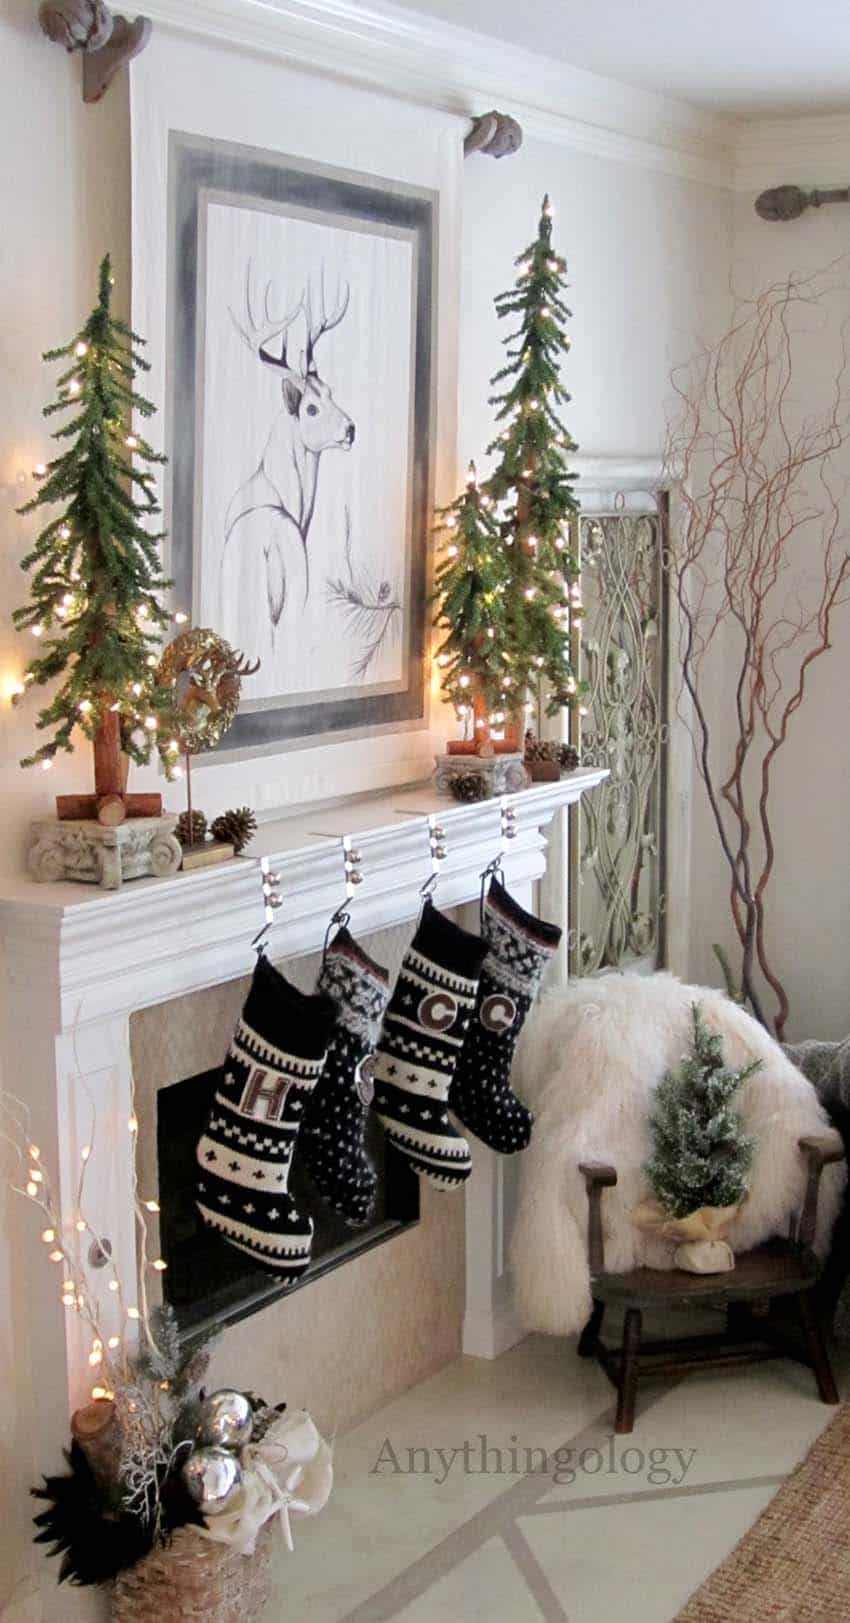 christmas mantel decorating ideas 55 1 kindesign - Christmas Mantel Decorating Ideas Pinterest